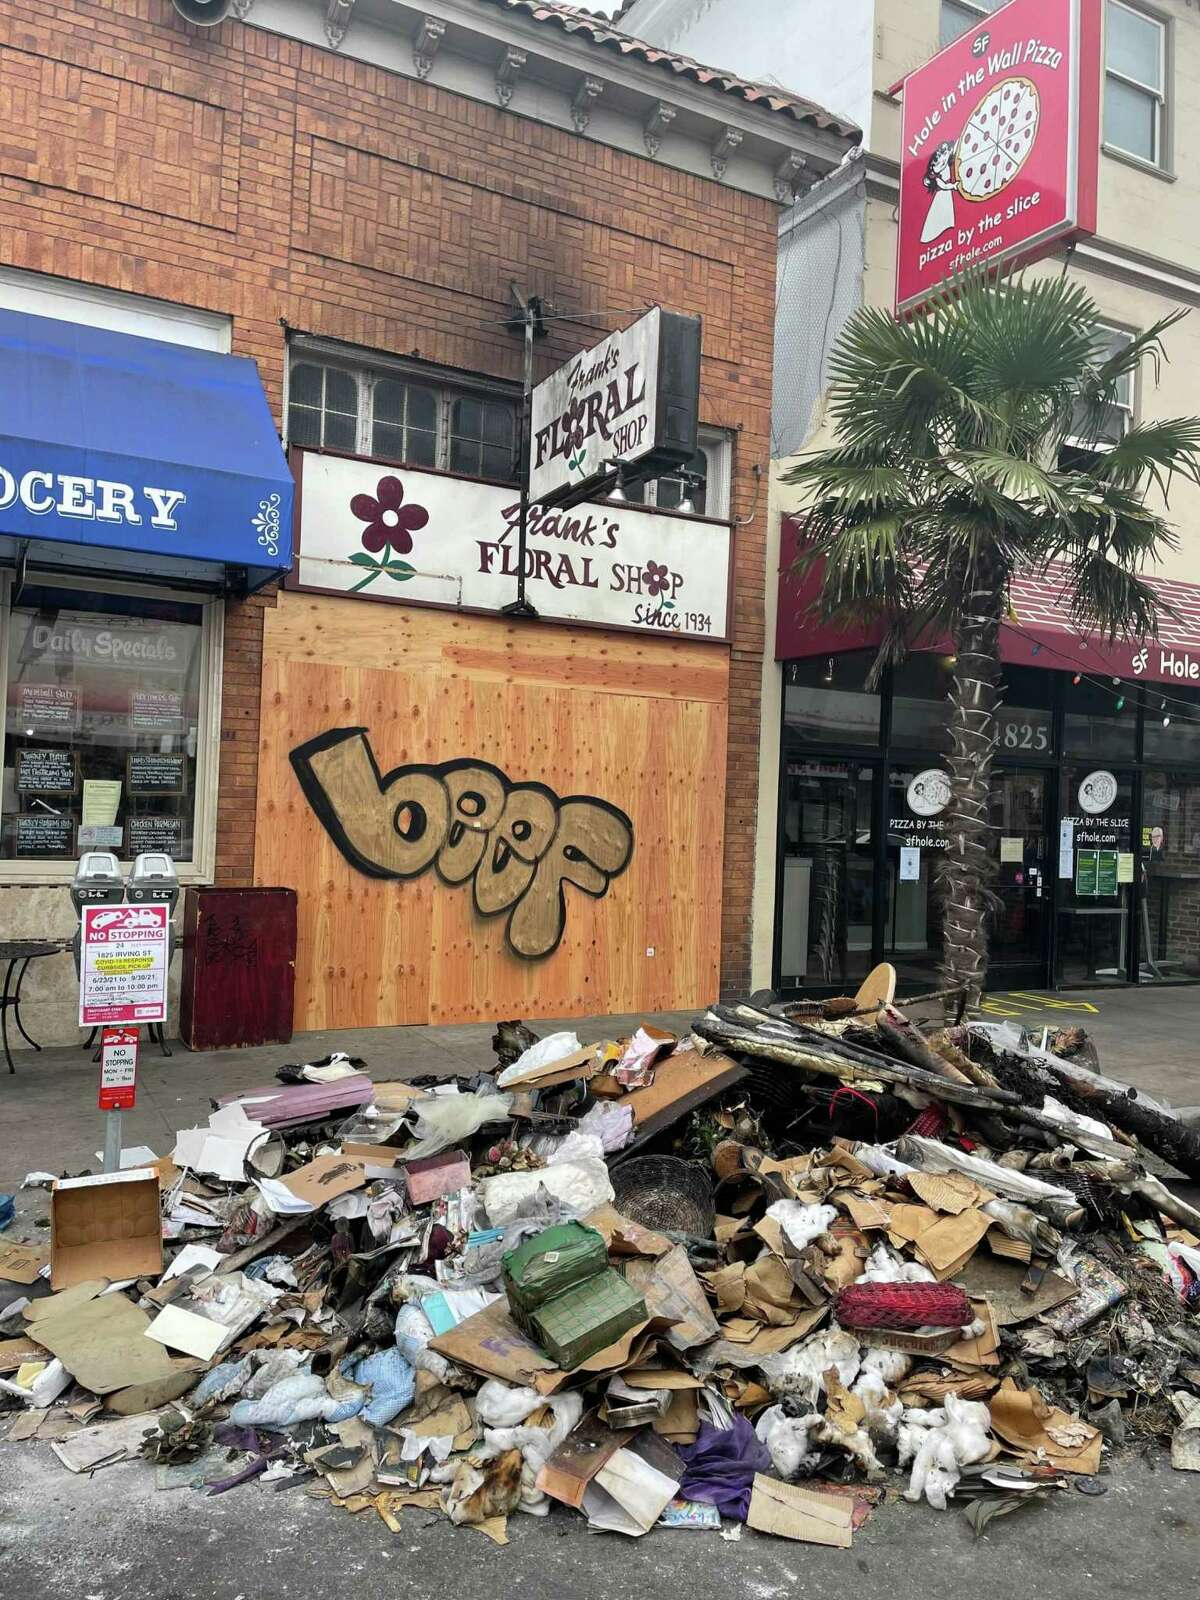 Charred trash is piled outside Frank's Floral Shop in San Francisco after the store was robbed and torched.